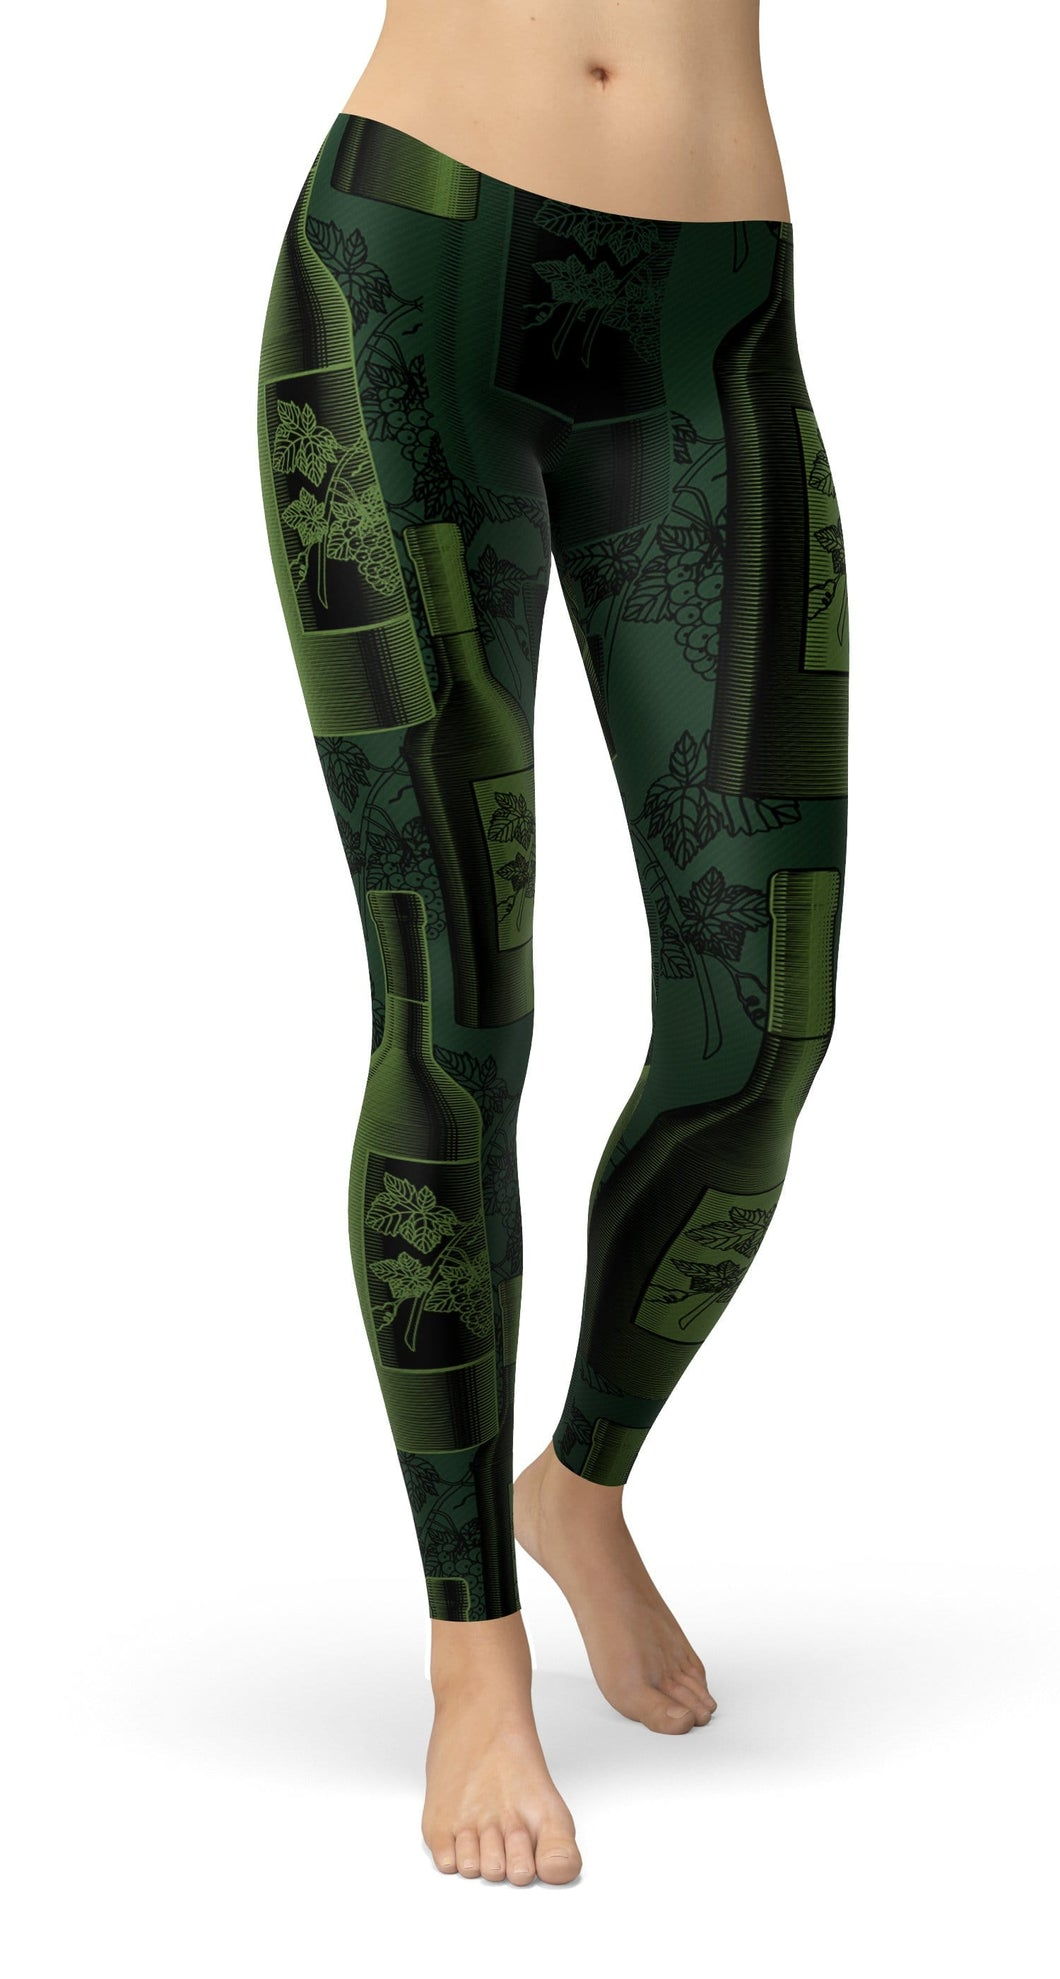 Wine Bottles Leggings - US FITGIRLS